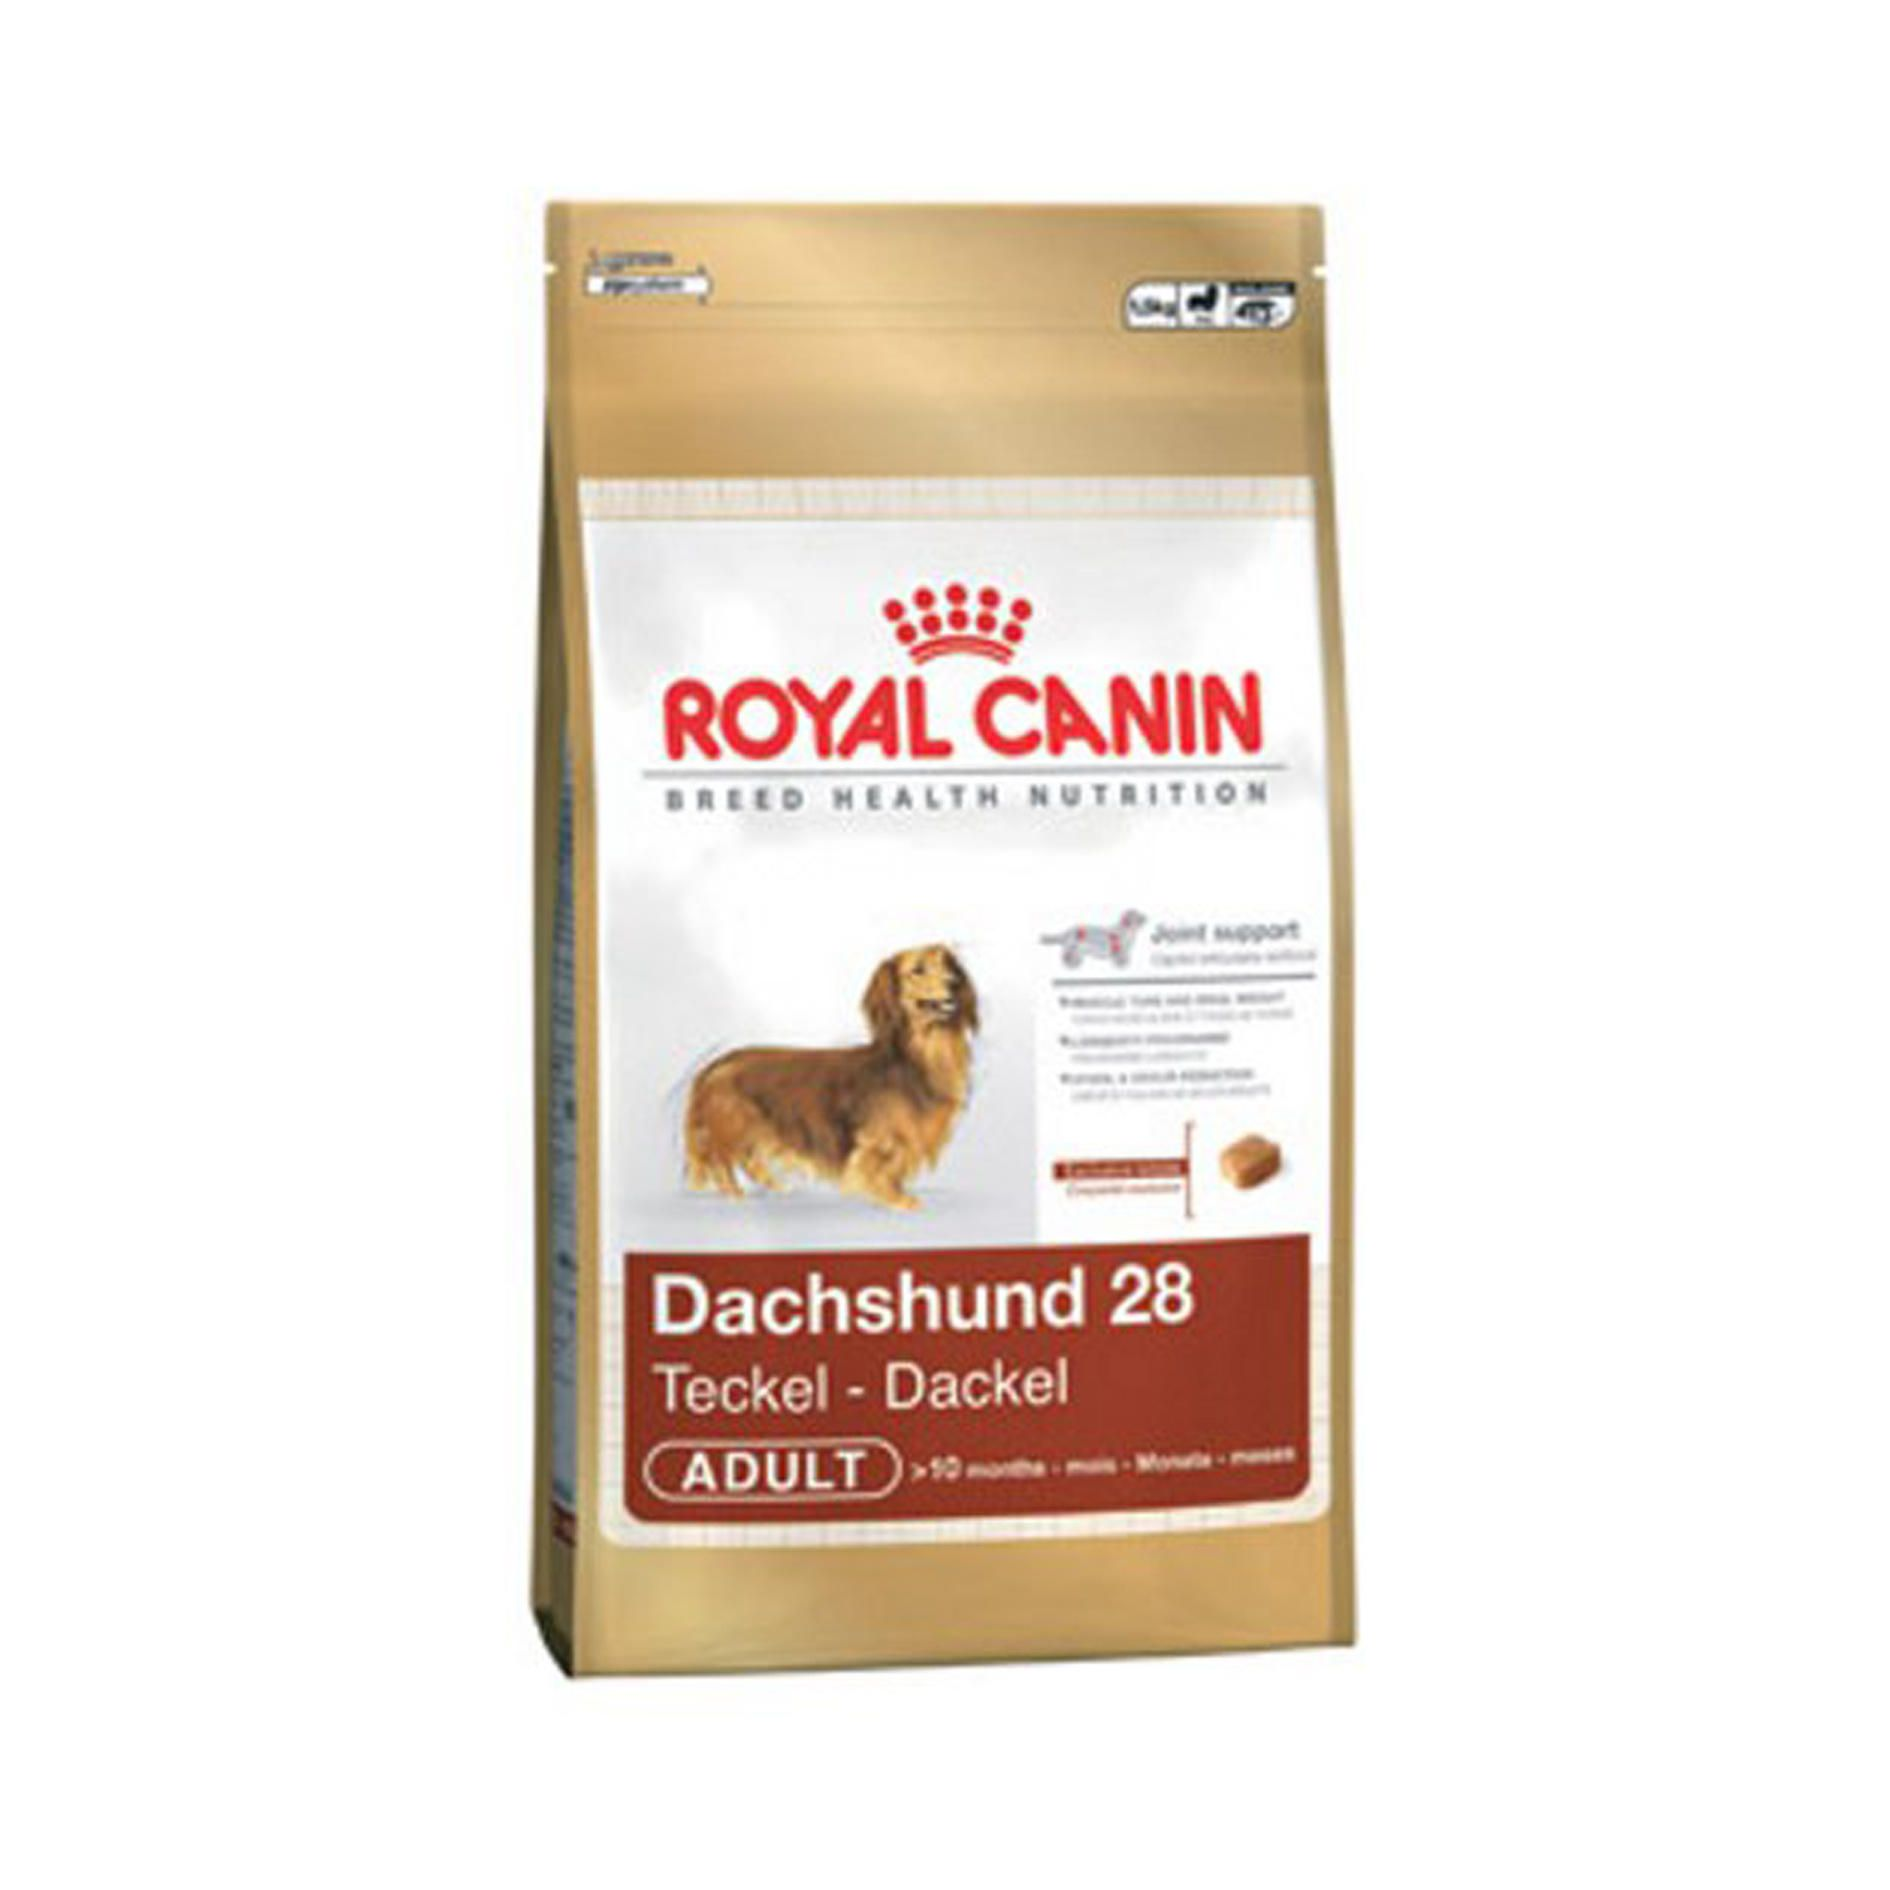 Royal Canin Breed Health Nutrition Dachshund 28 In 2019 Dog